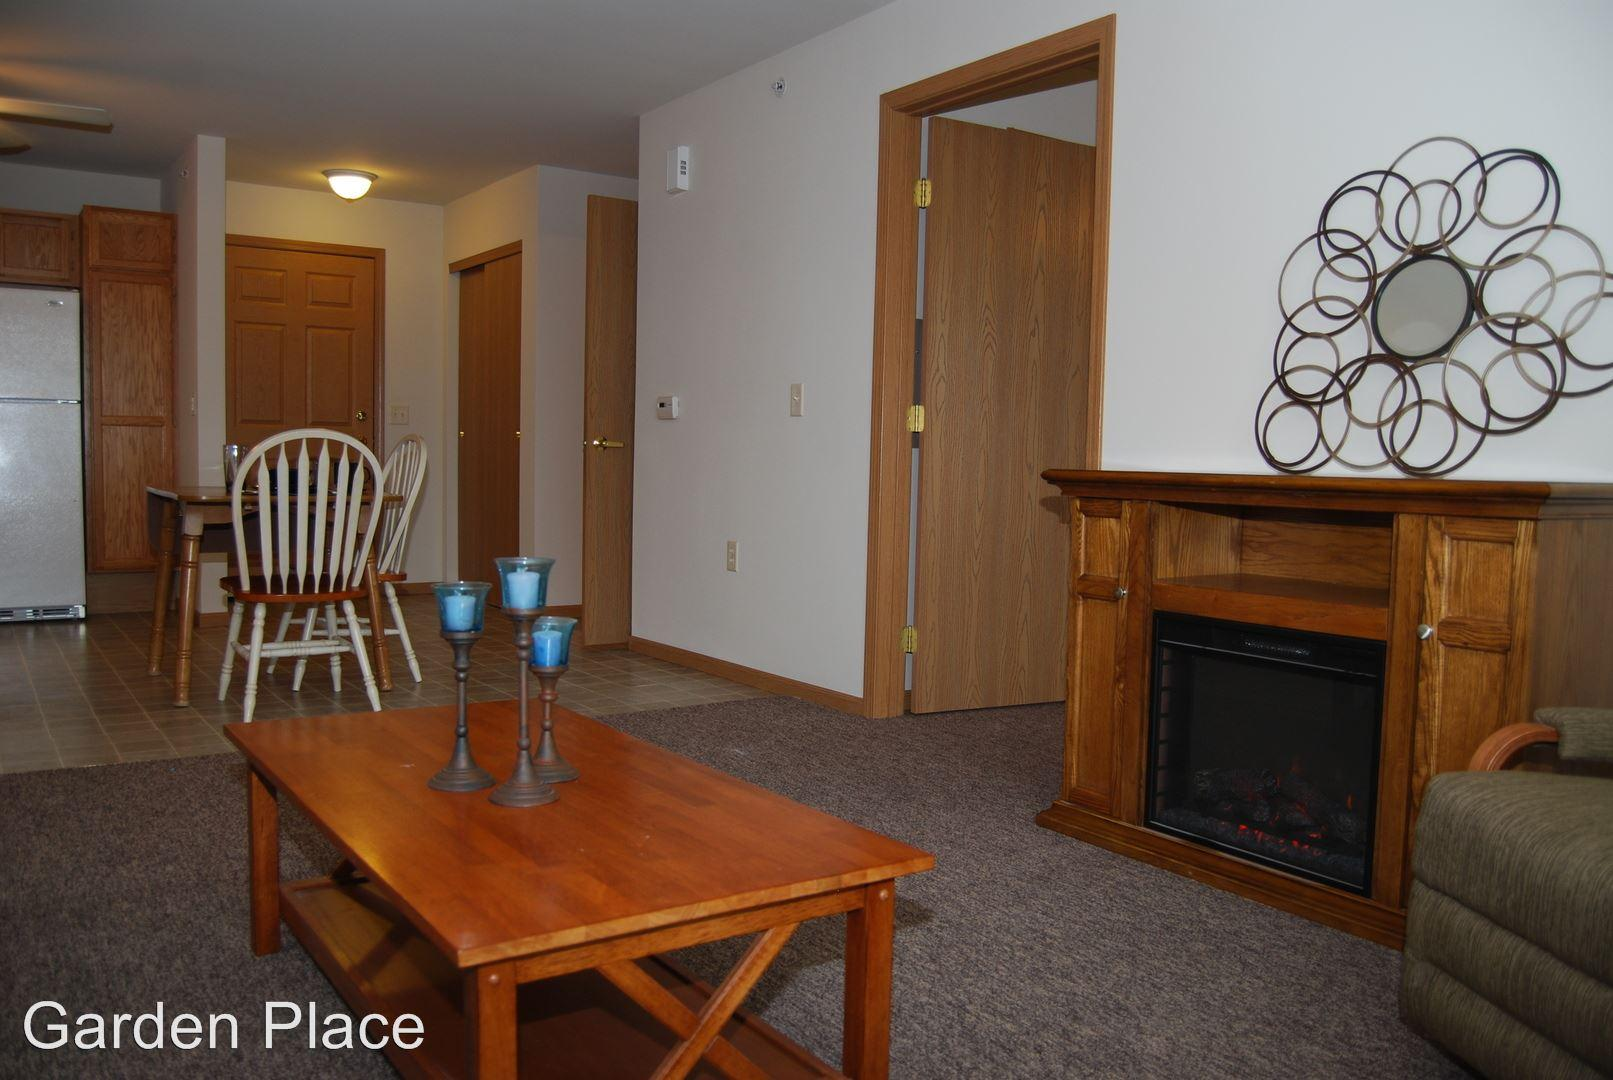 Garden Place 8425 N. 107th Street Apartments photo #1